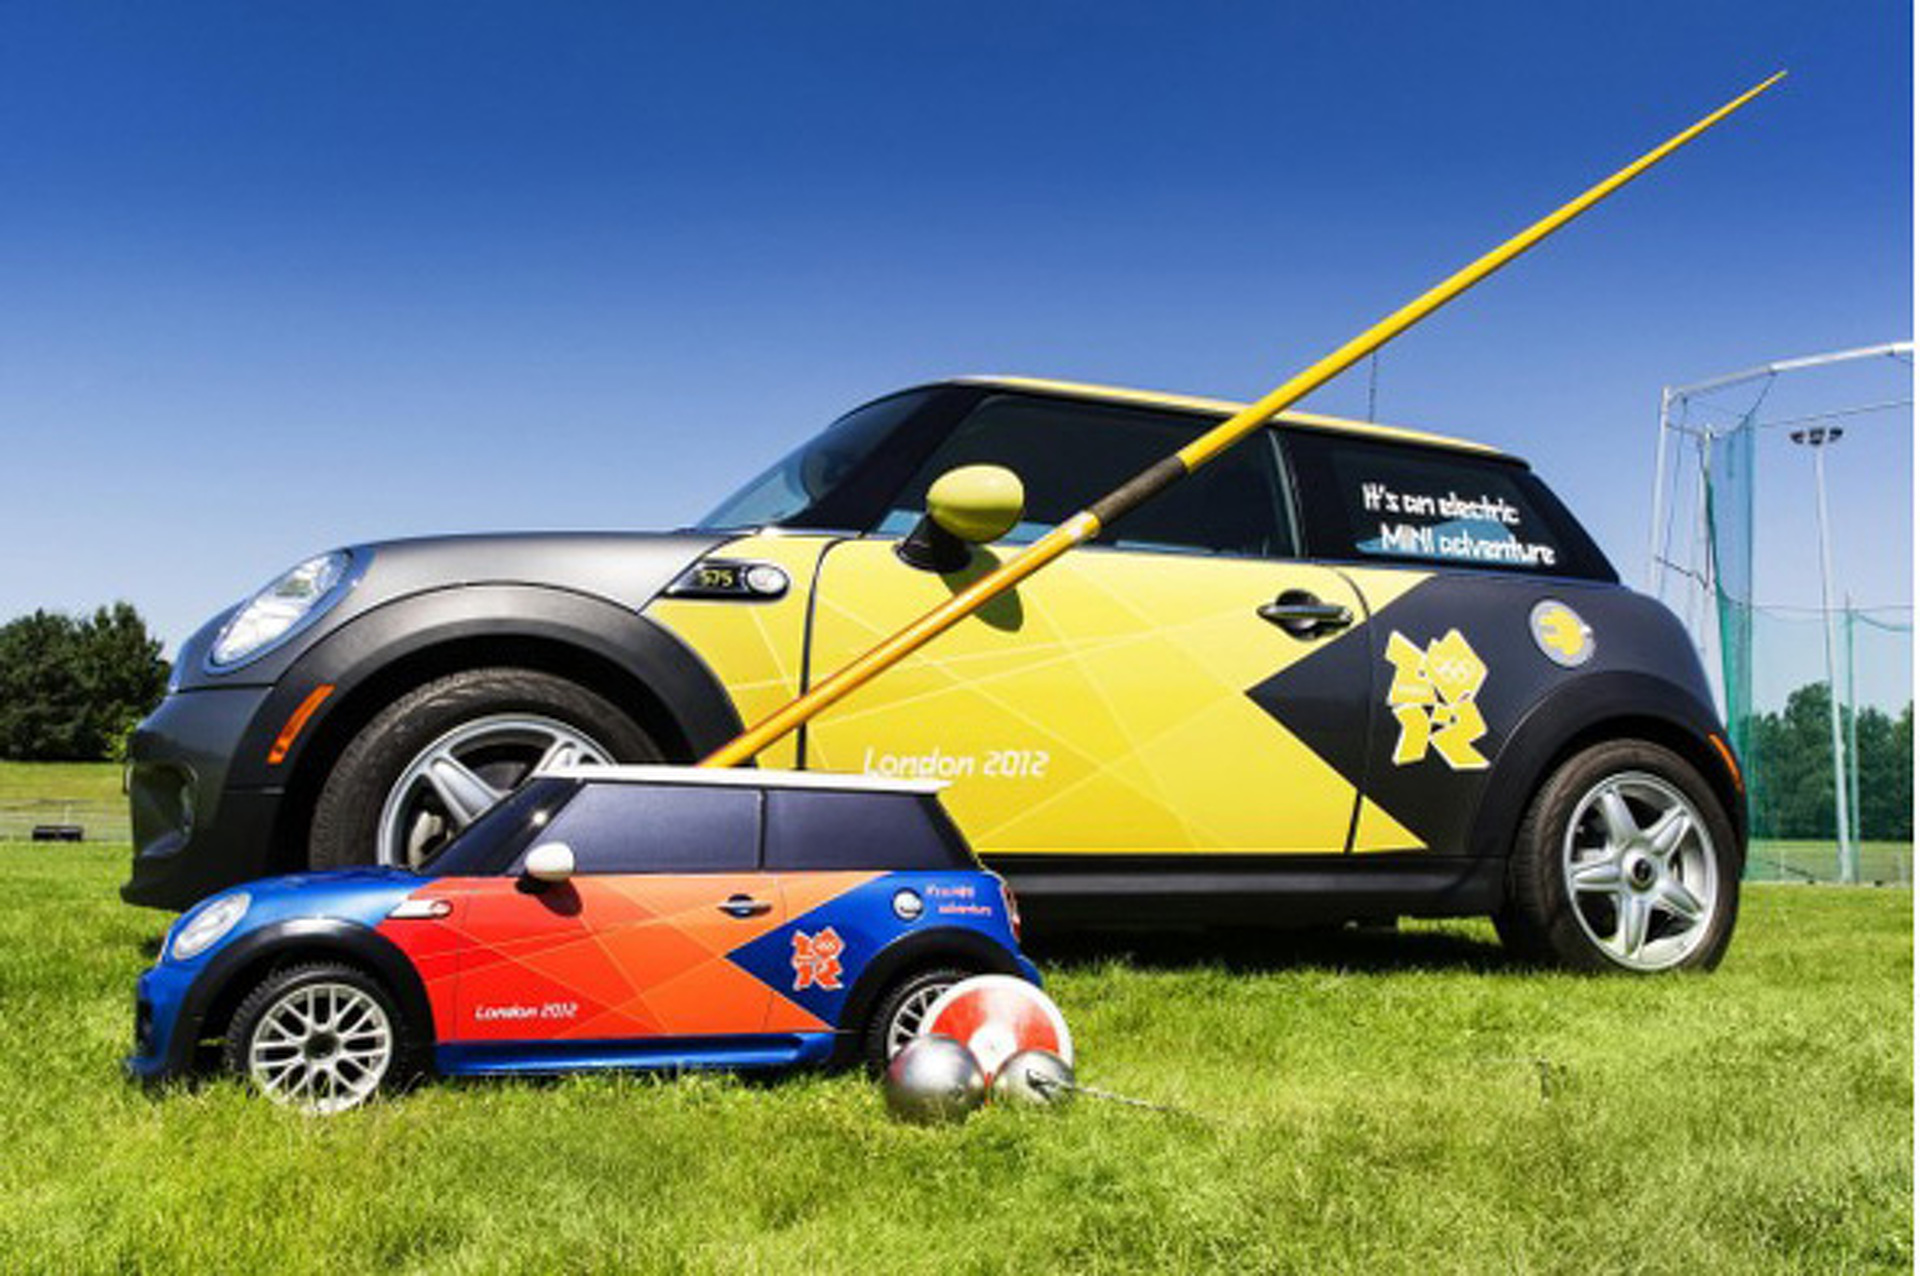 The 5 Reasons the 2012 Olympics are Blowing Our Car Guy Minds